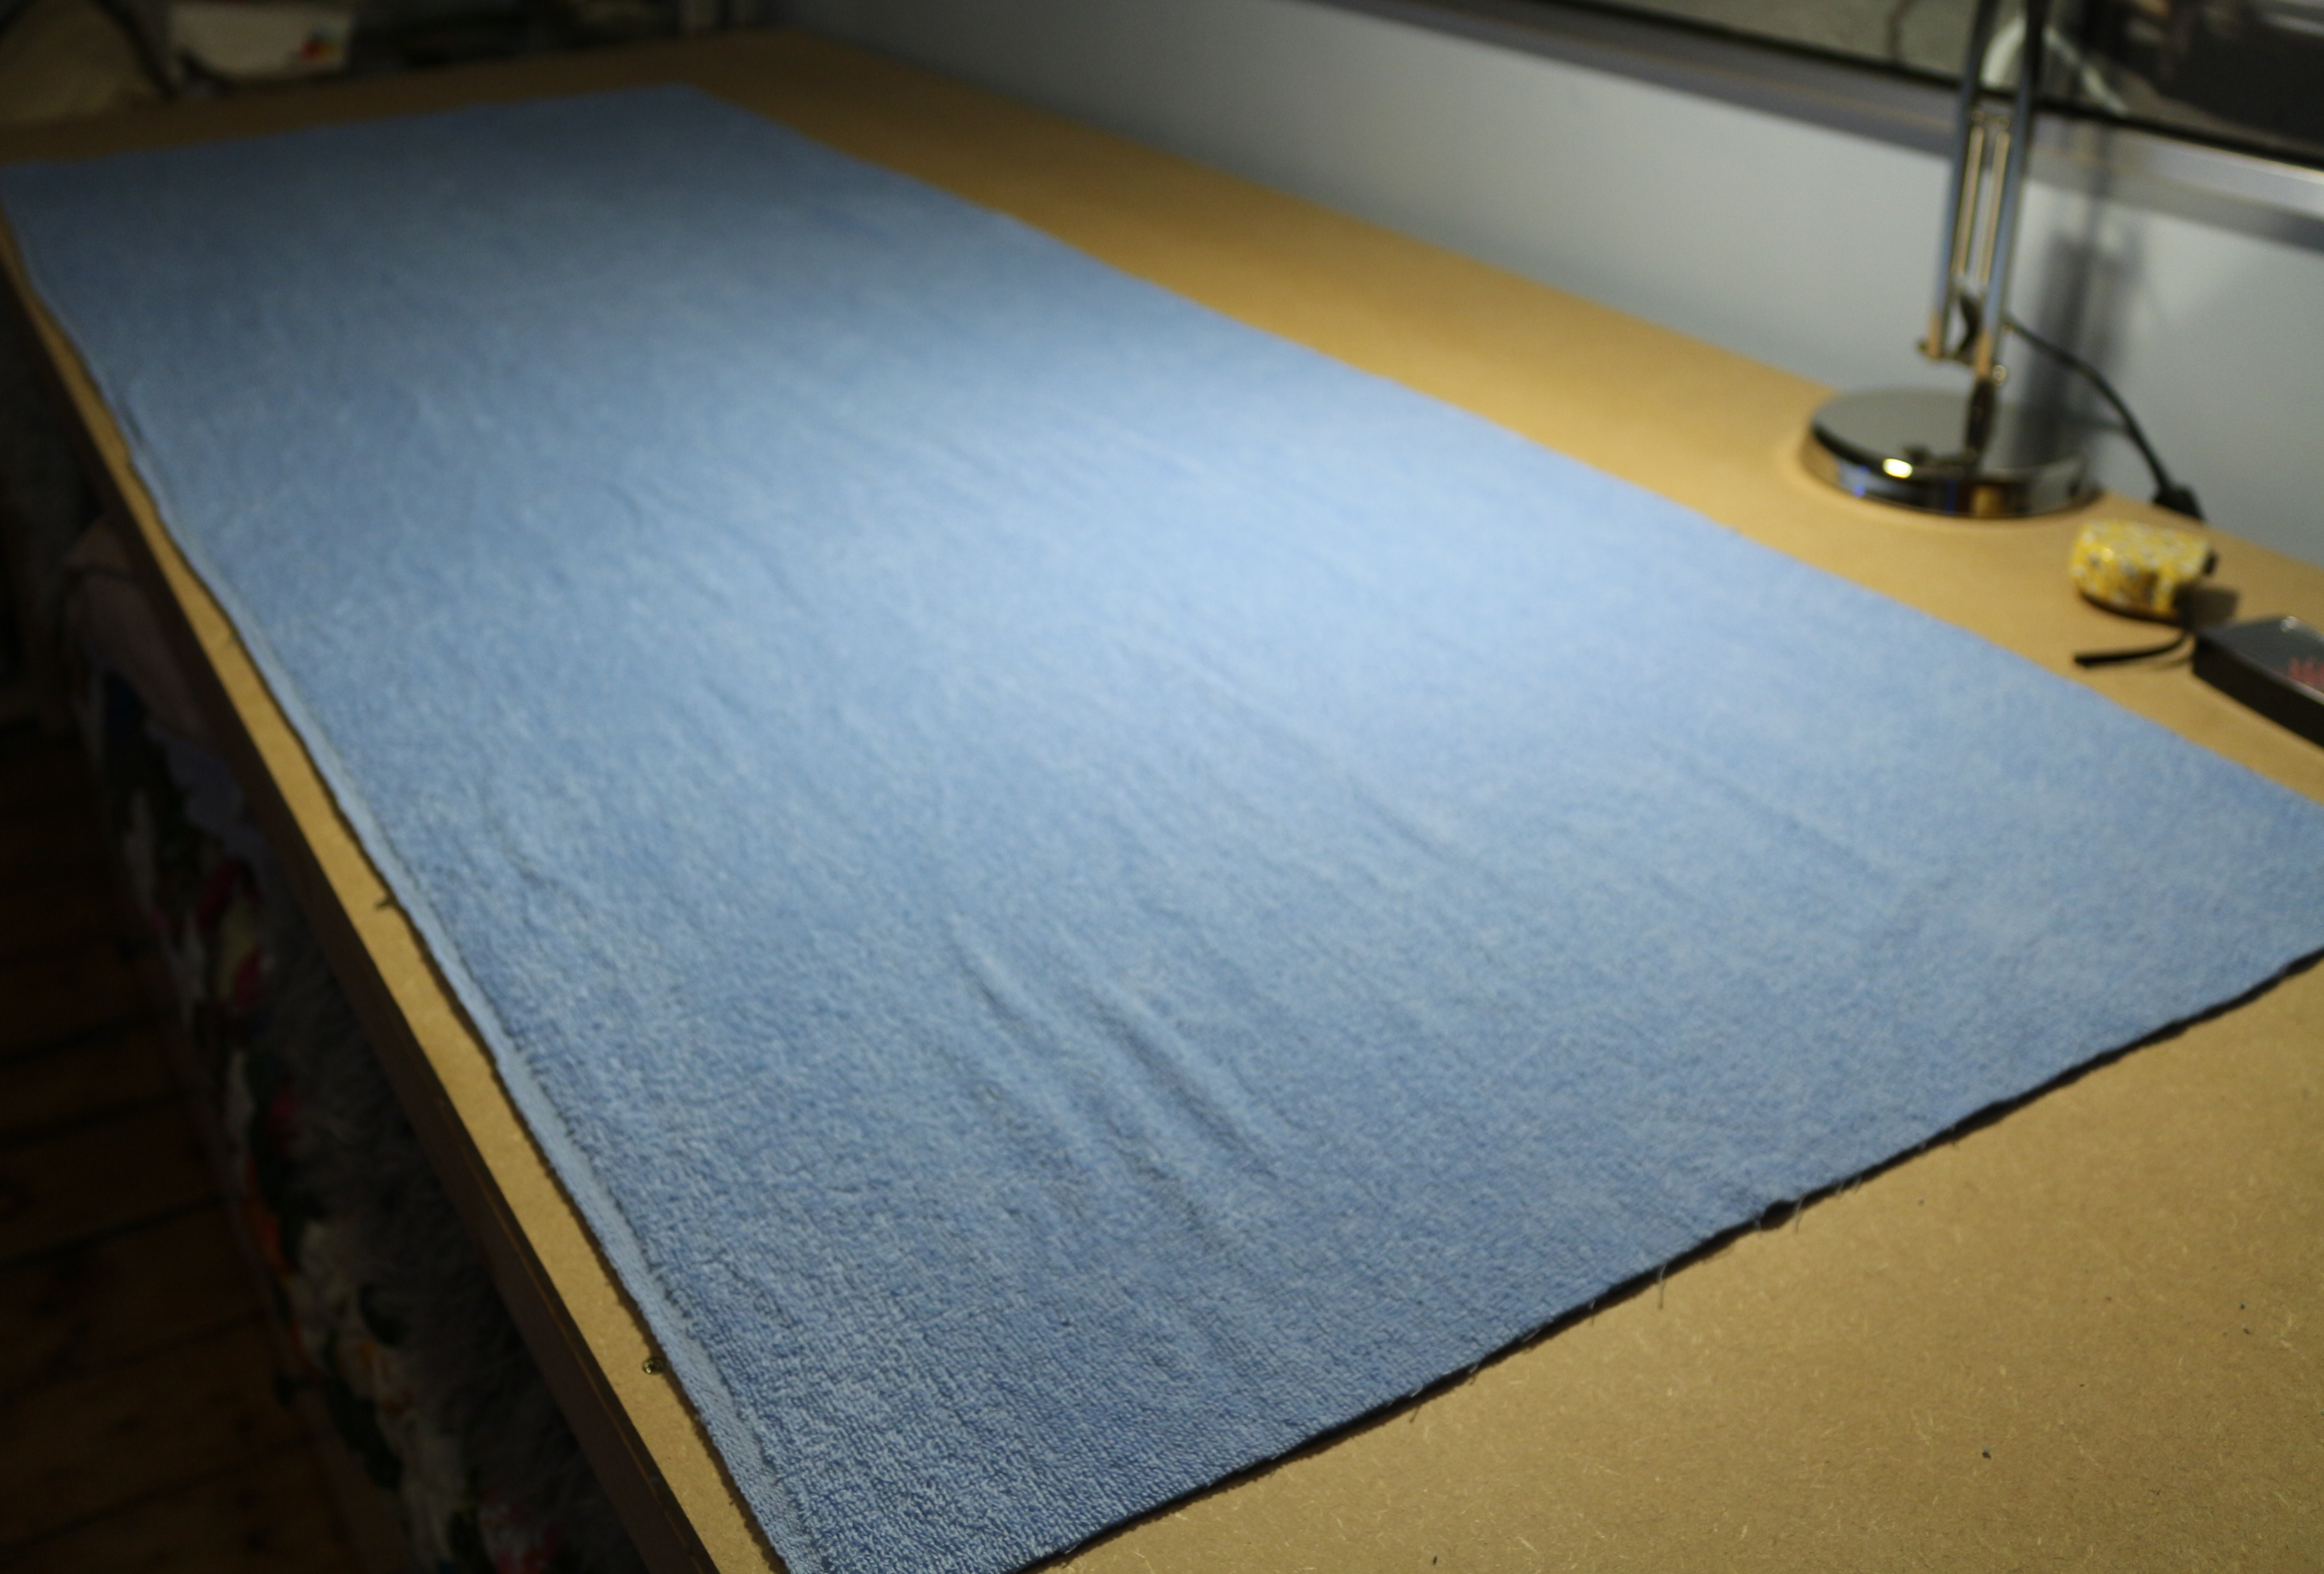 A Quick Diy For Yoga Yoga Mat Towel Baking Making And Crafting